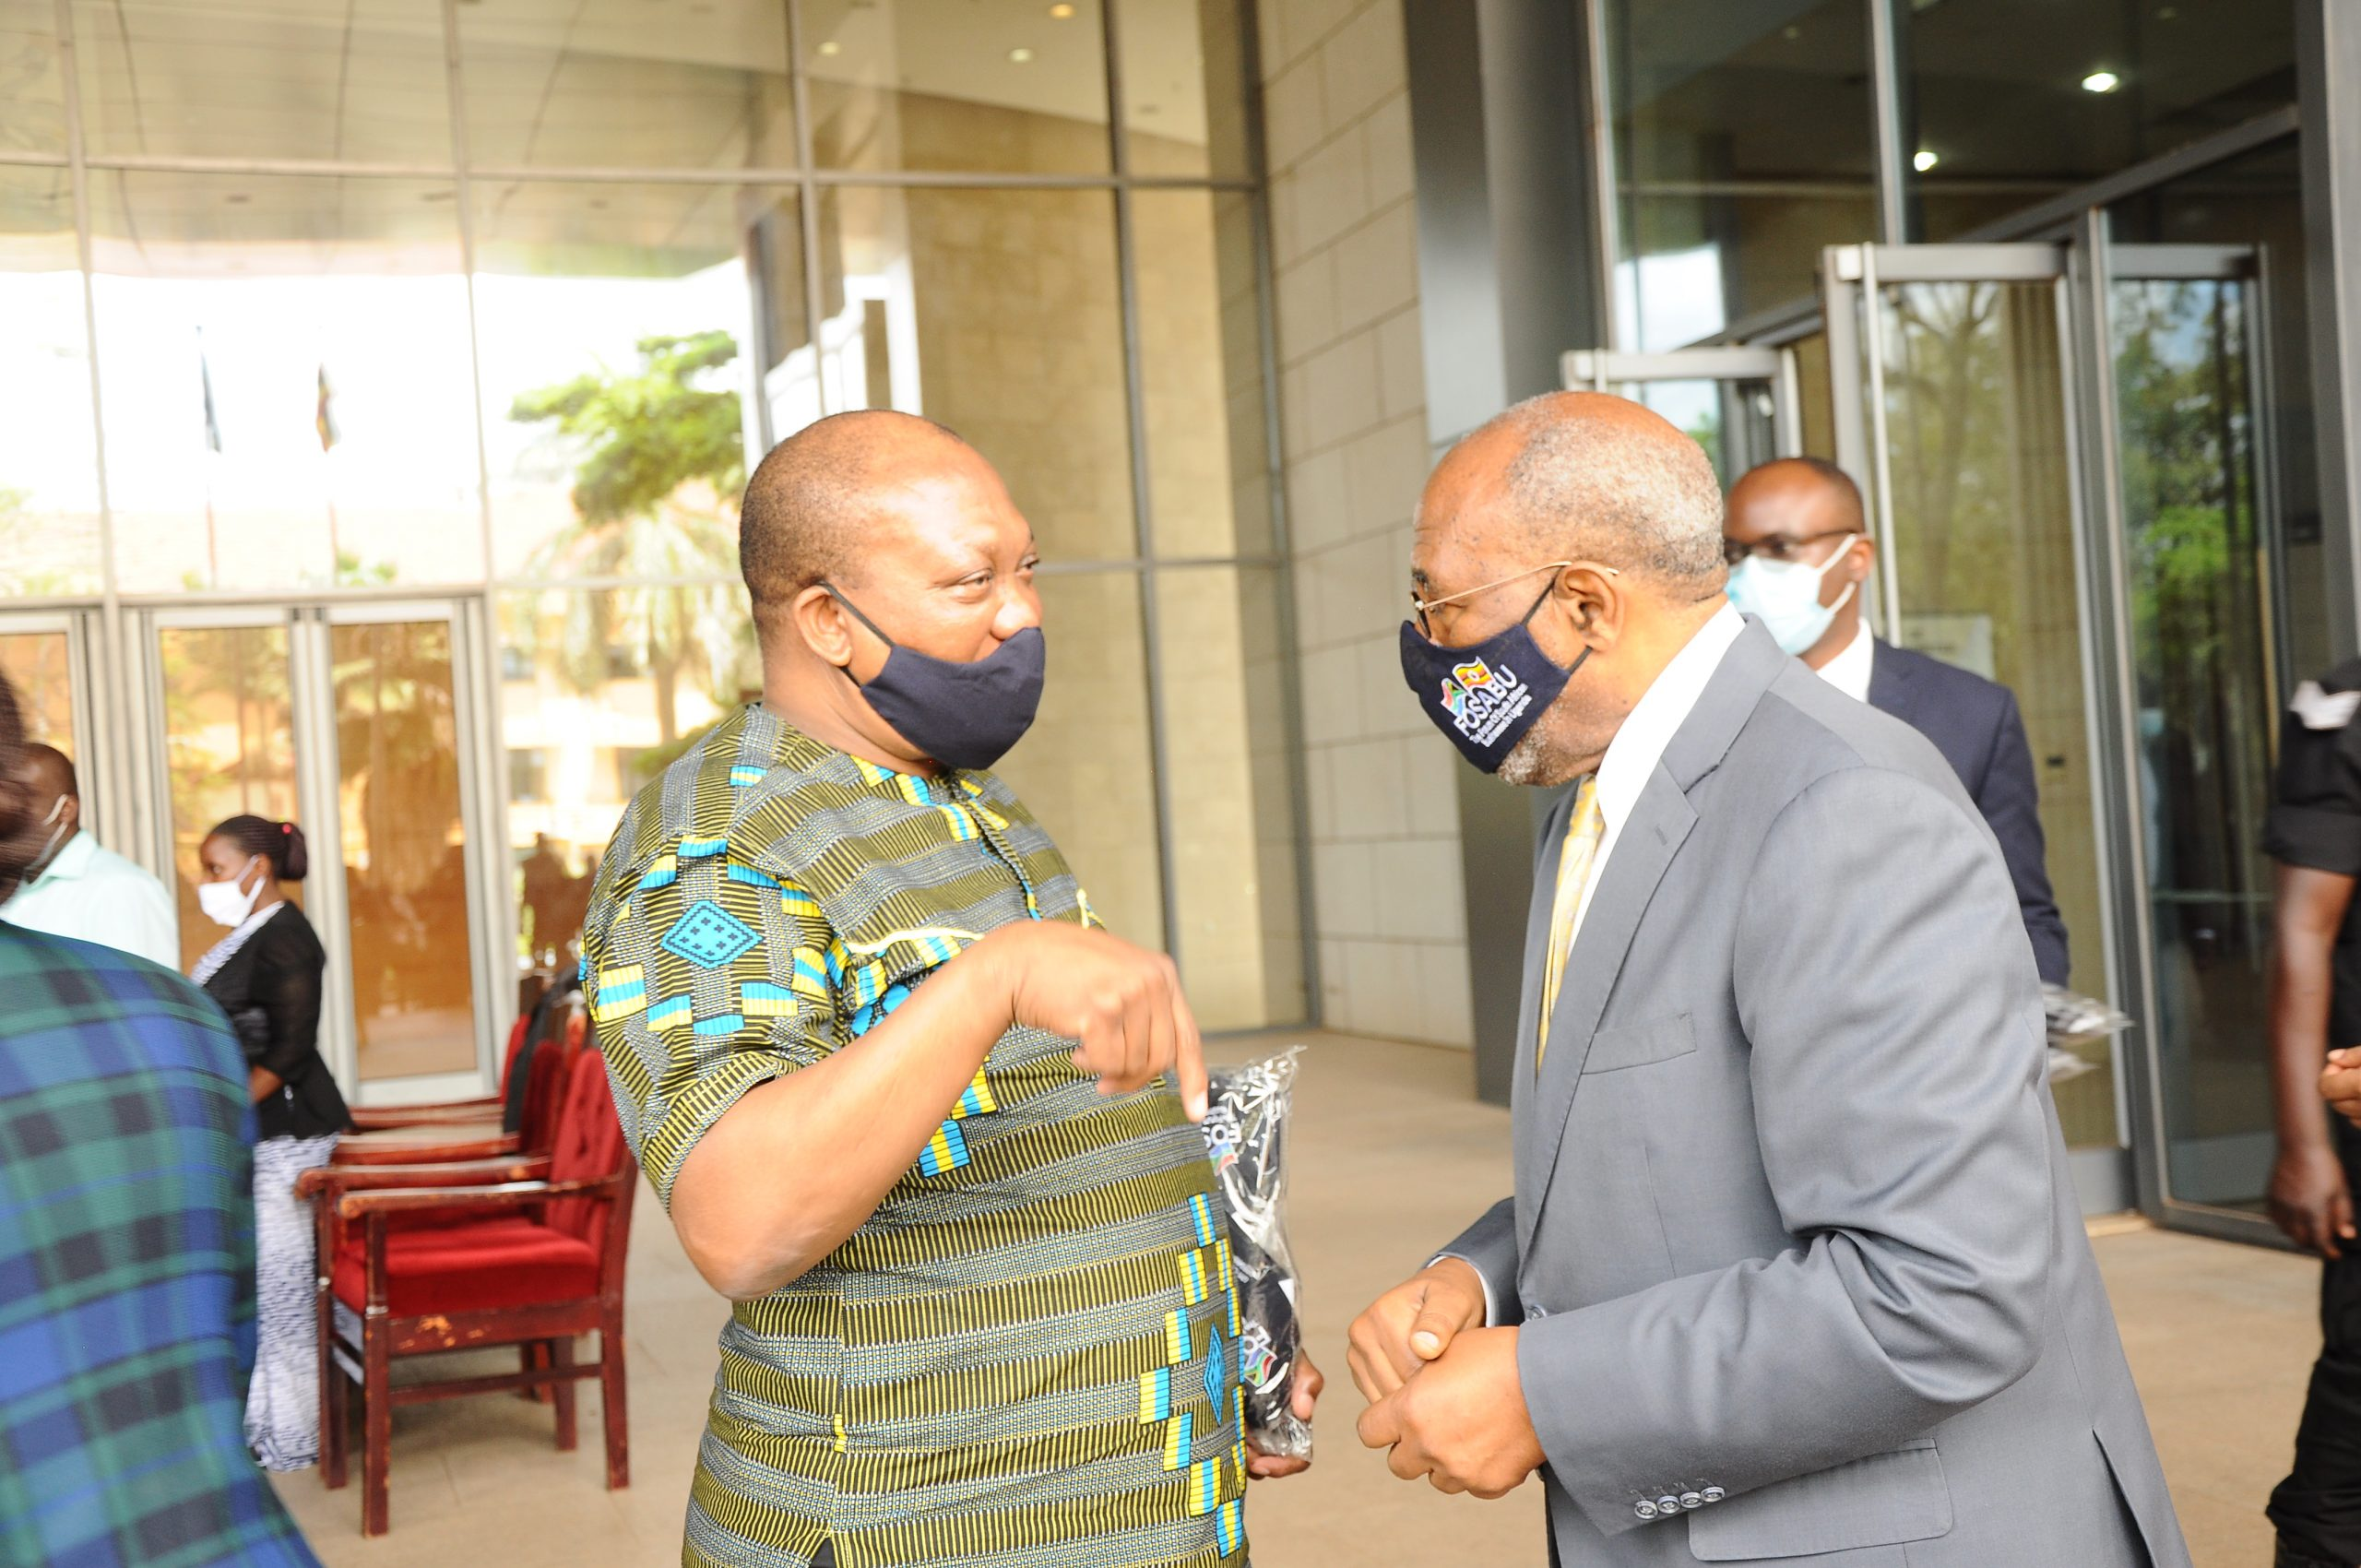 South African High Commissioner Lekoa Solly Mollo with the Prime Minister to Uganda Ruhakana Rugunda have a chat after FOSABU handed over Covid-19 PPE worth UGX100 million.